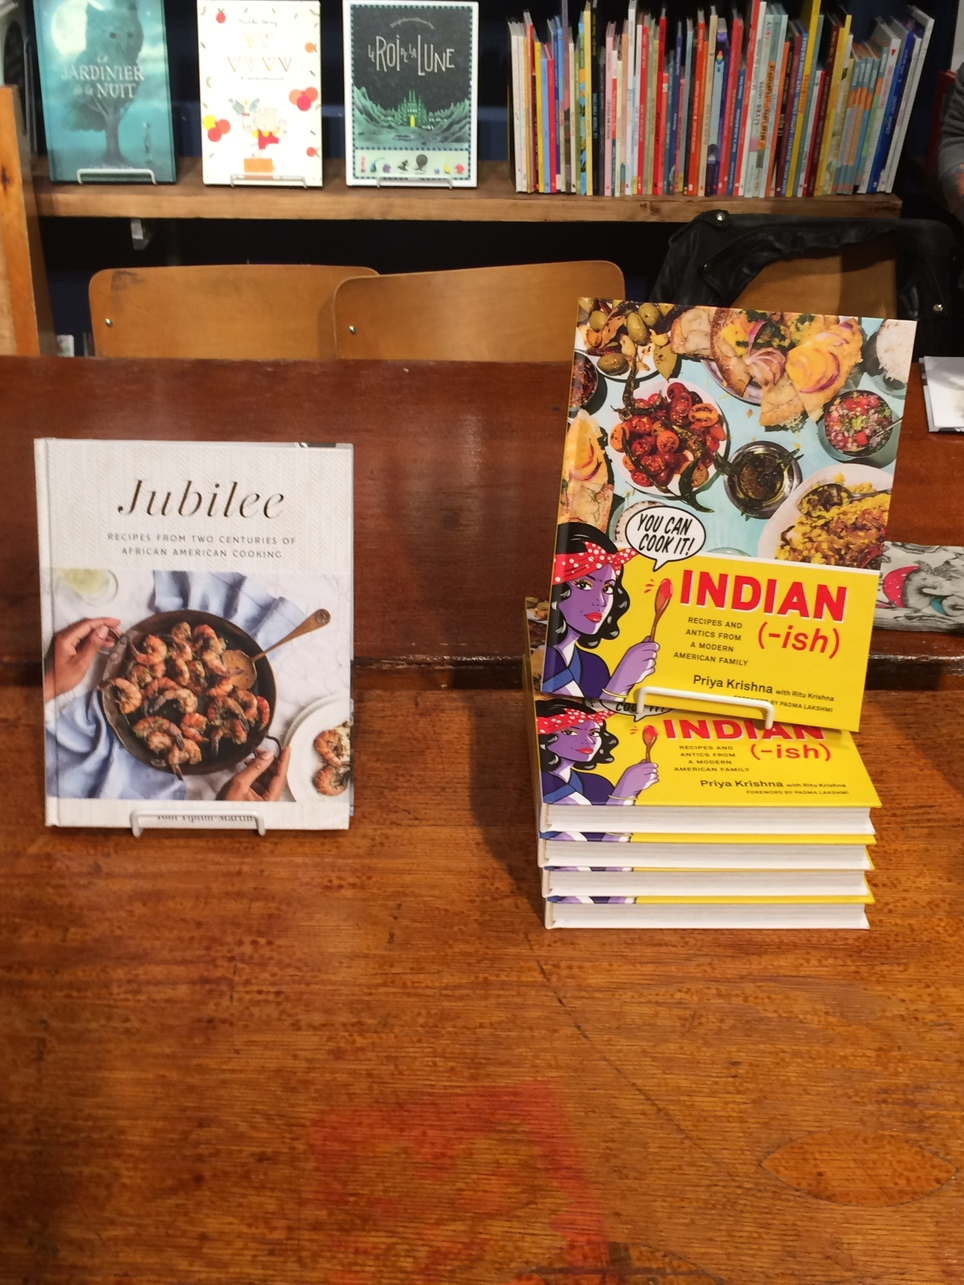 Cookbook club ! Let's share Jubilee's wonderful recipes !